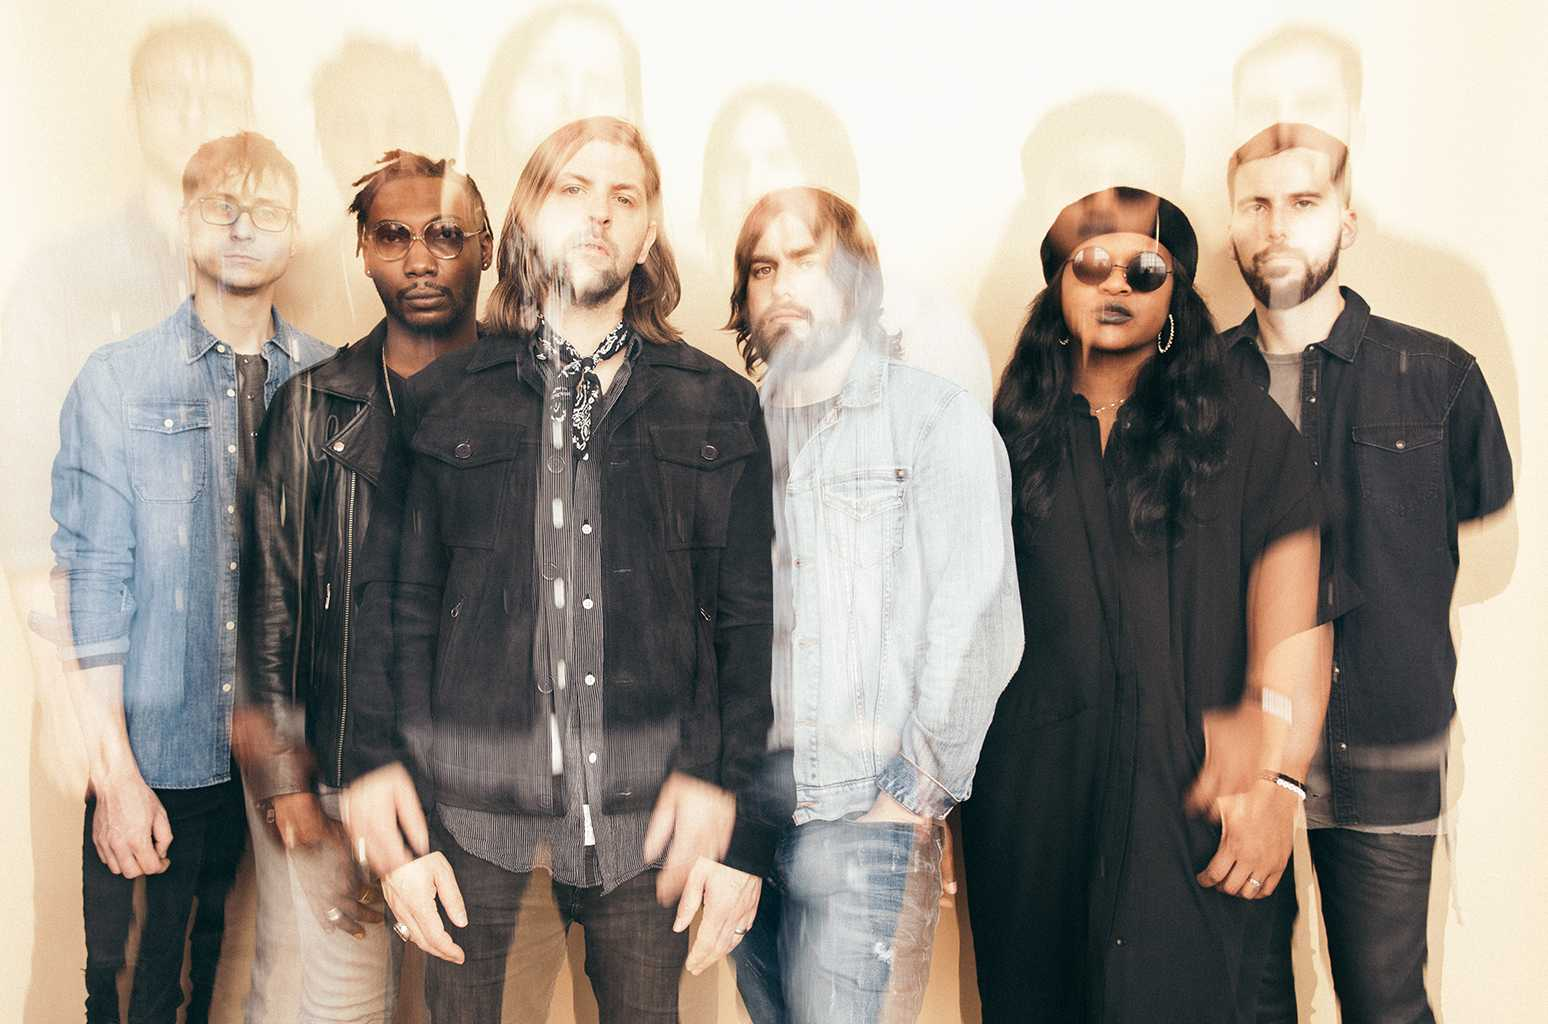 Welshly Arms Delivers Punchy Rock Anthem With 'Learn to Let Go': Premiere